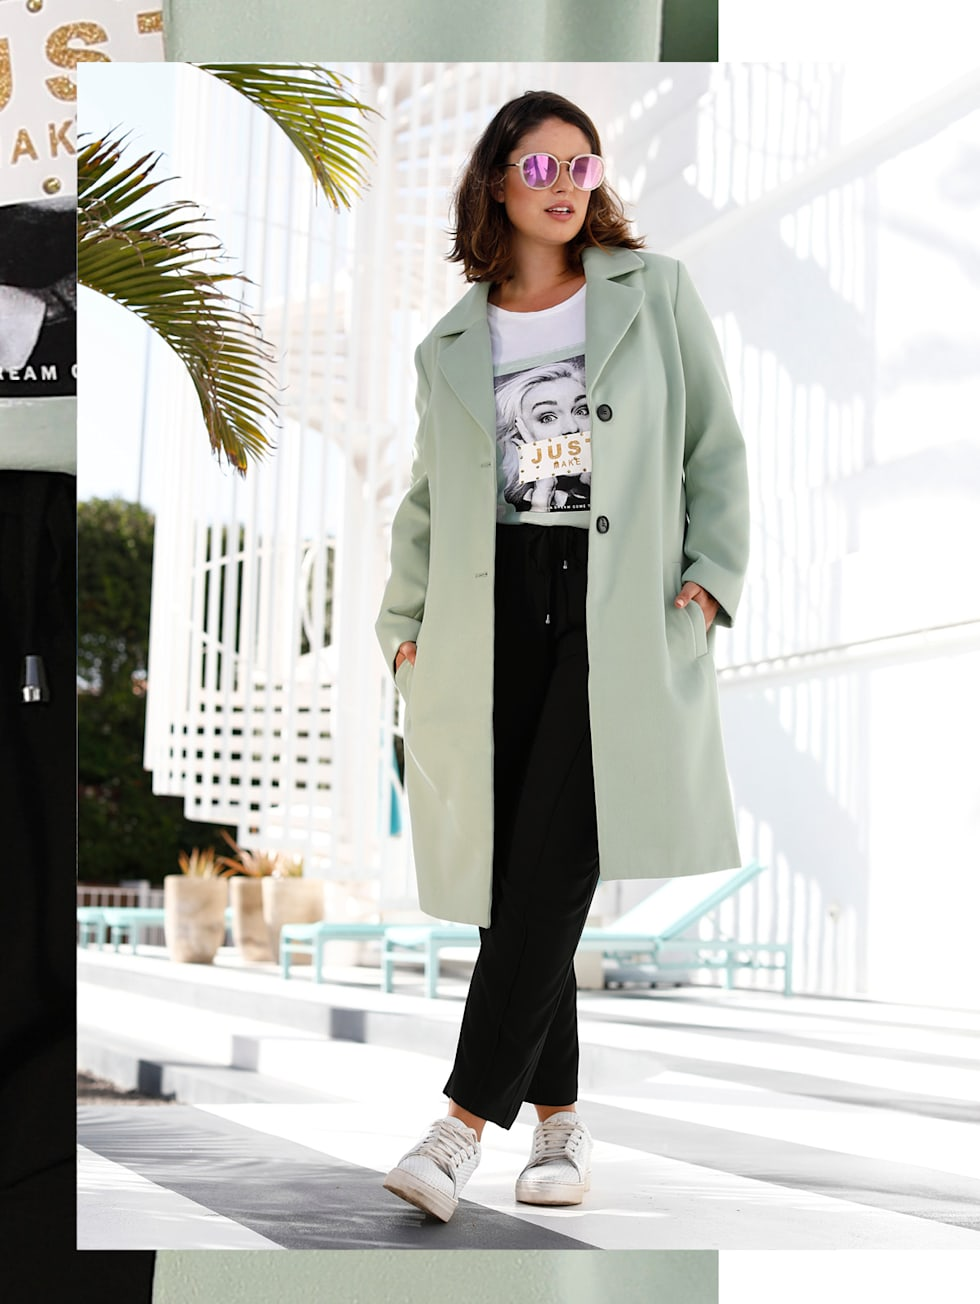 Pastell at work Outfit | HAPPYsize